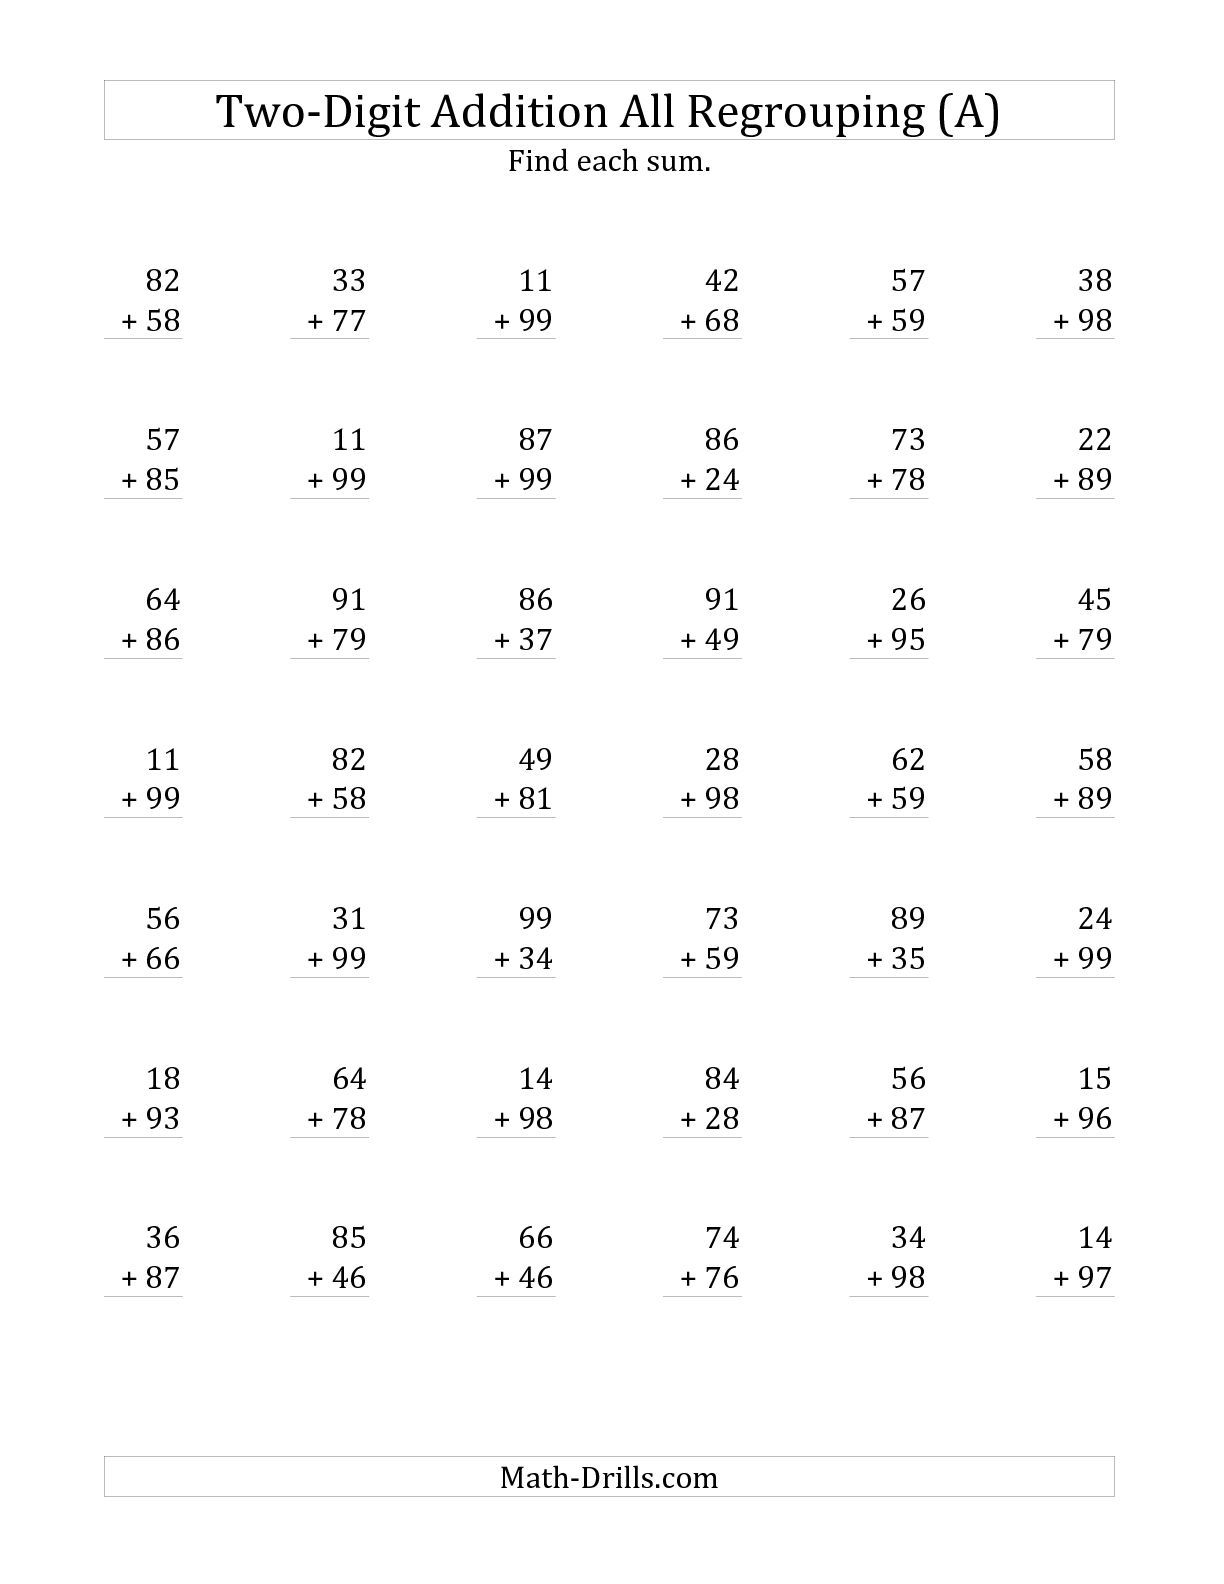 The 2-Digit Addition with All Regrouping (A) math worksheet from the ...